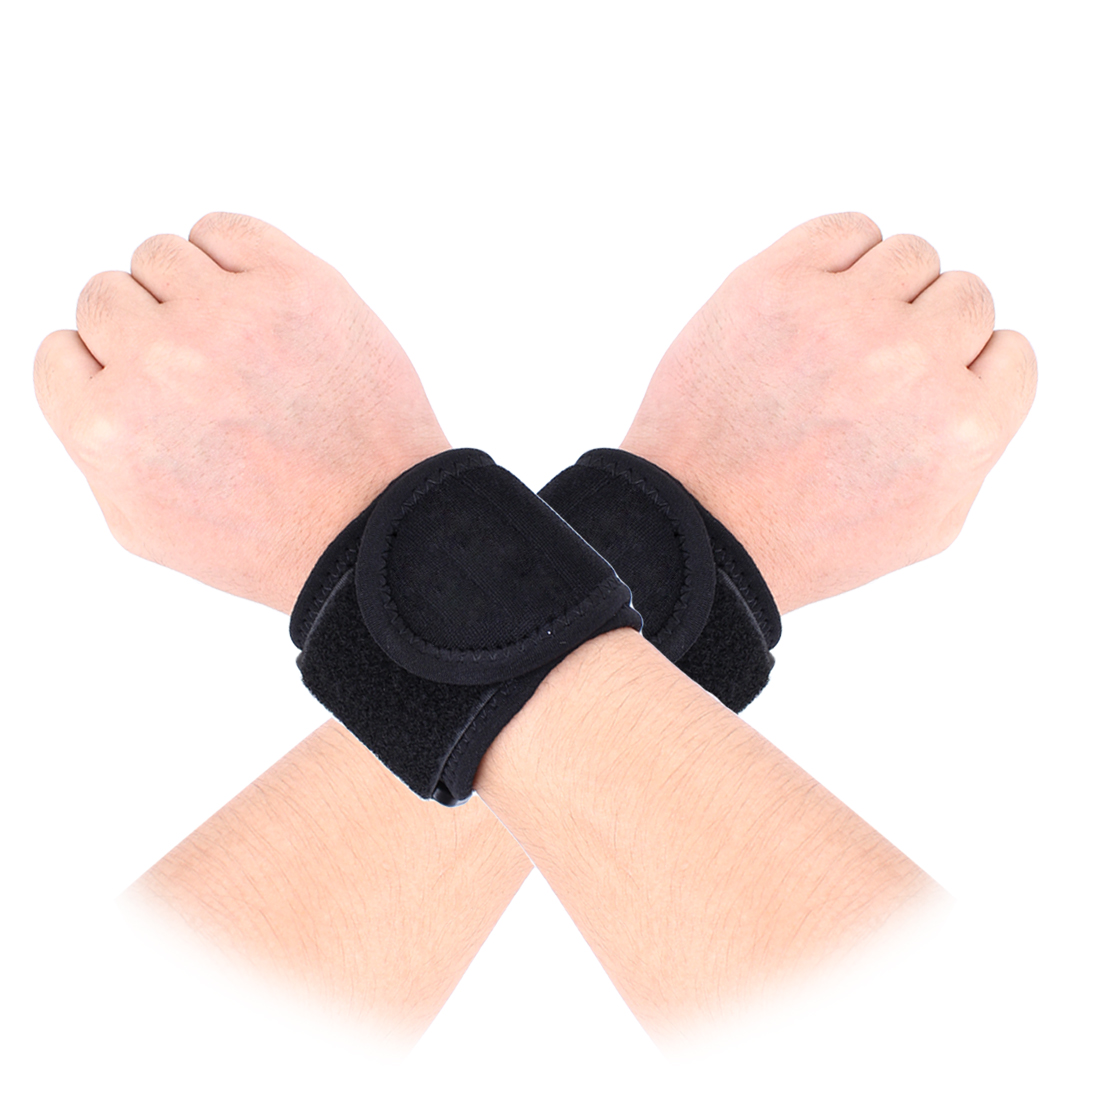 Black Hoop Loop Fastener Sports Protecting Wrist Support for Man